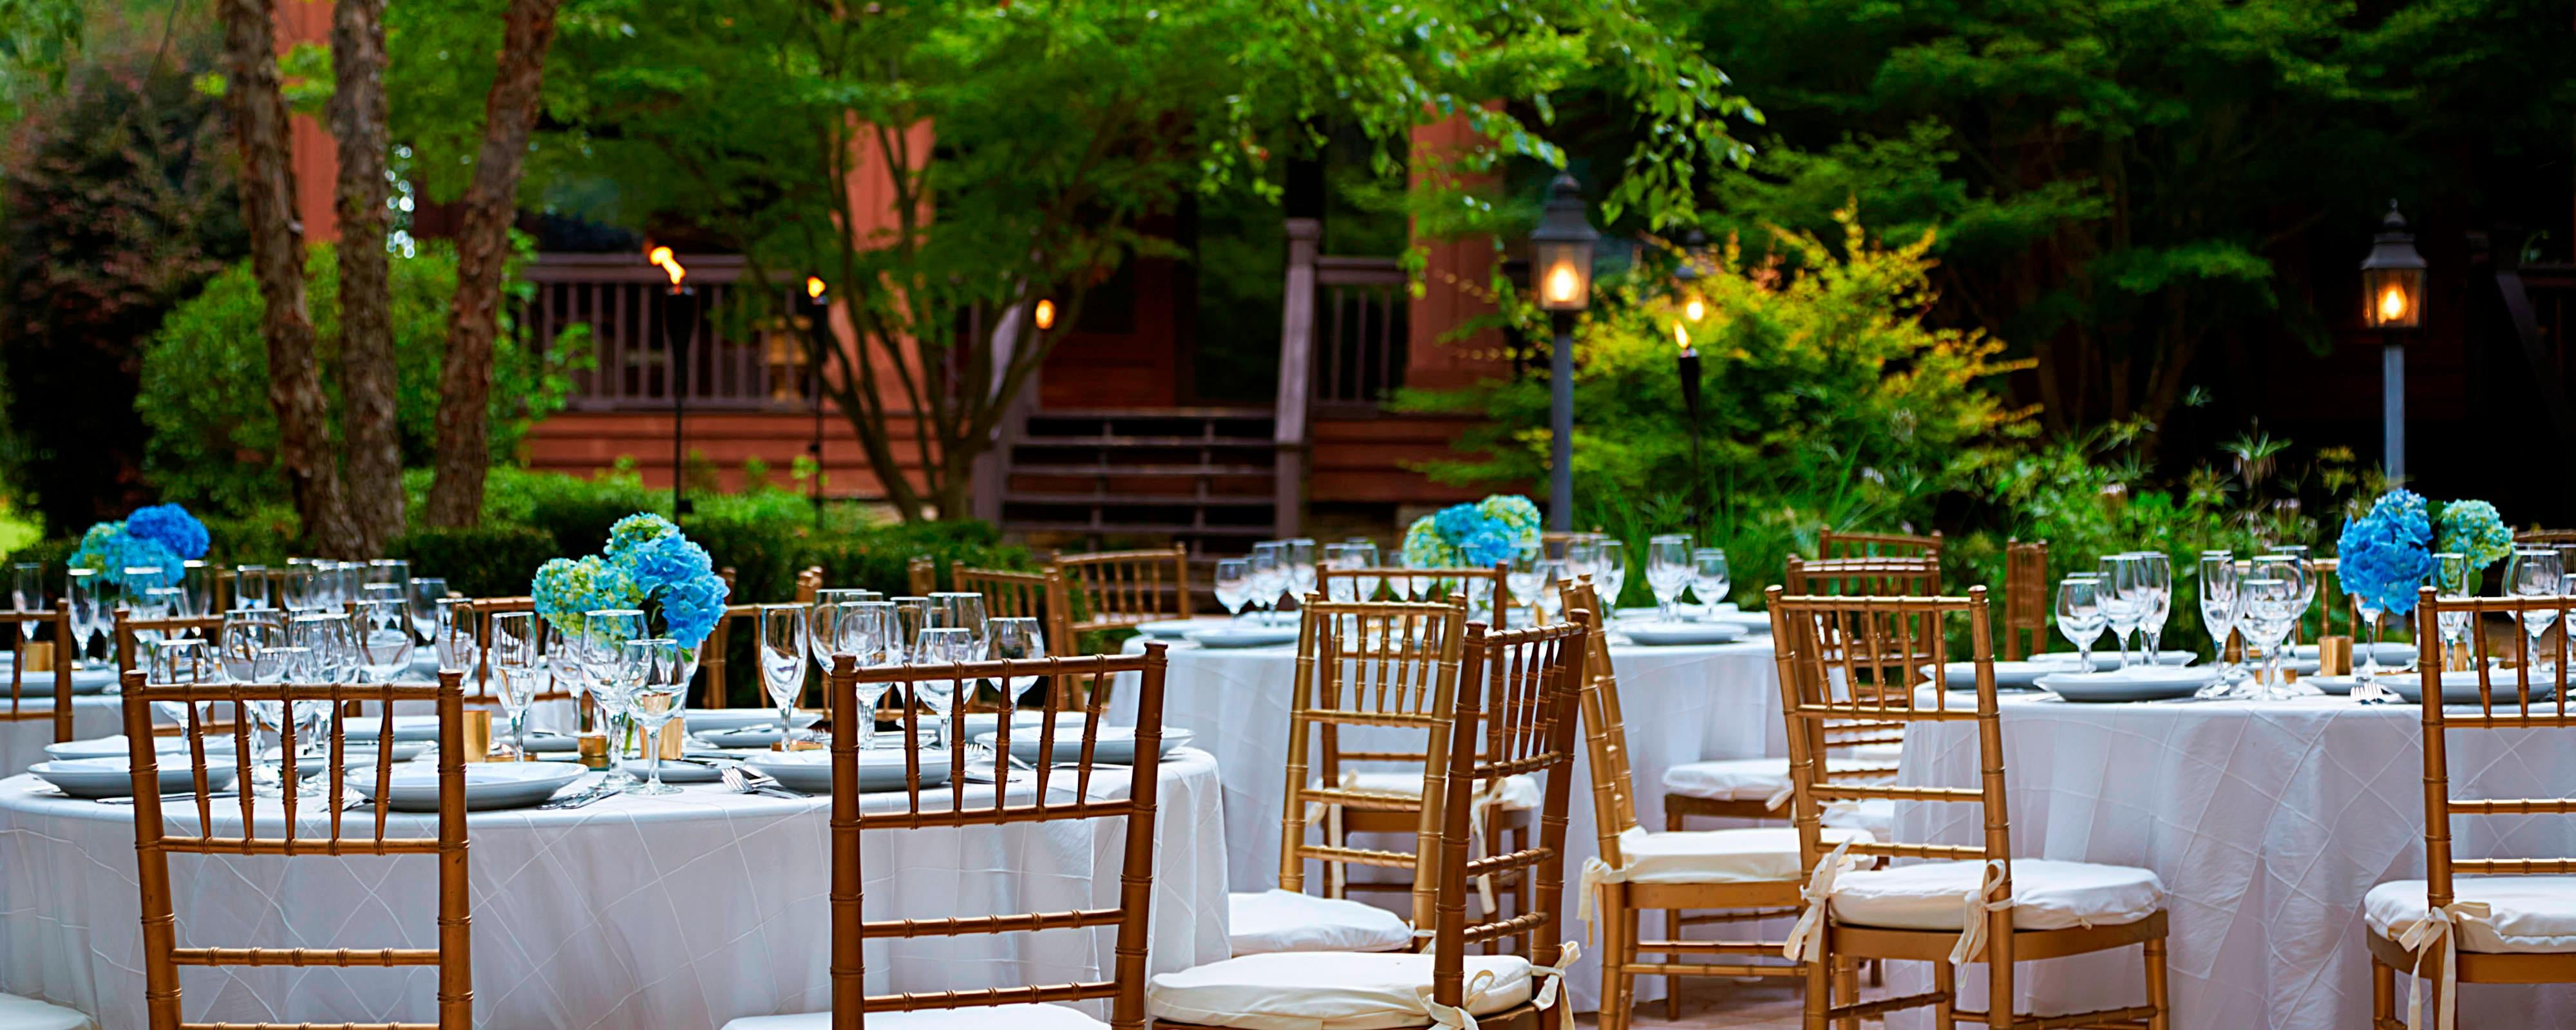 Outdoor wedding venues in Montgomery